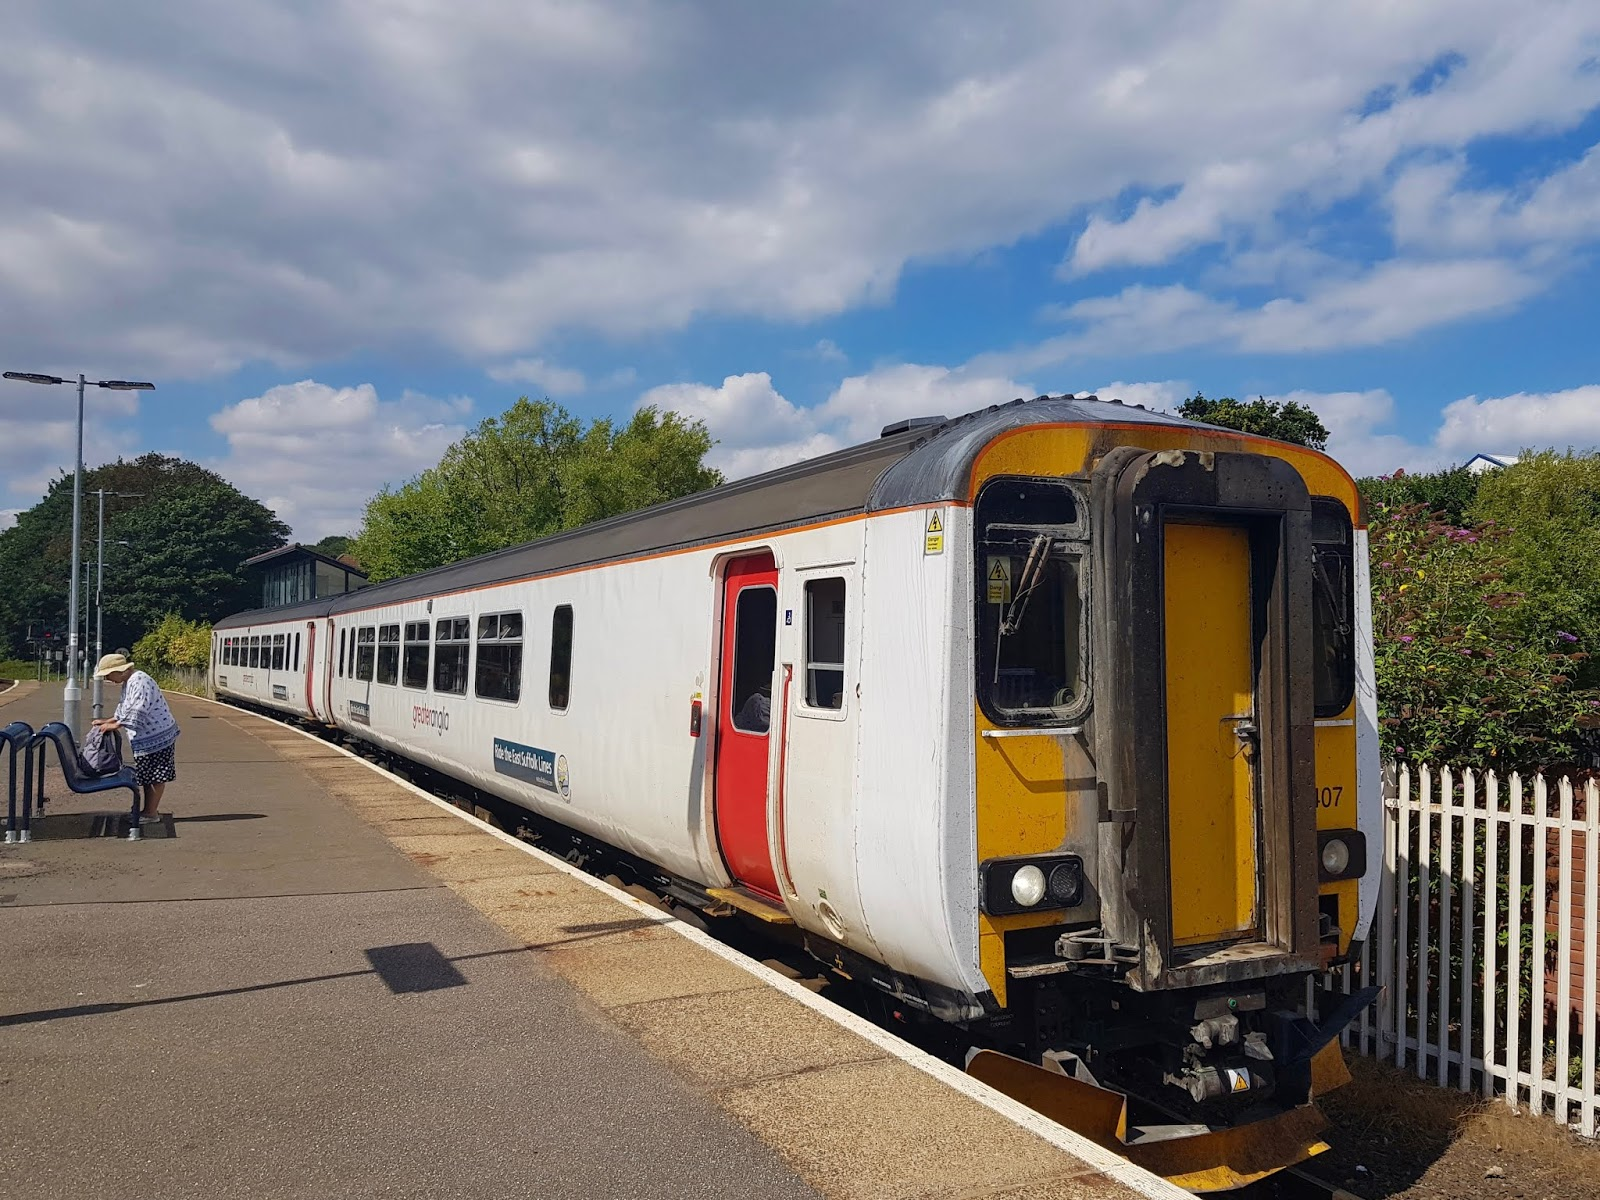 greater anglia train parked at station with passenger ready to board